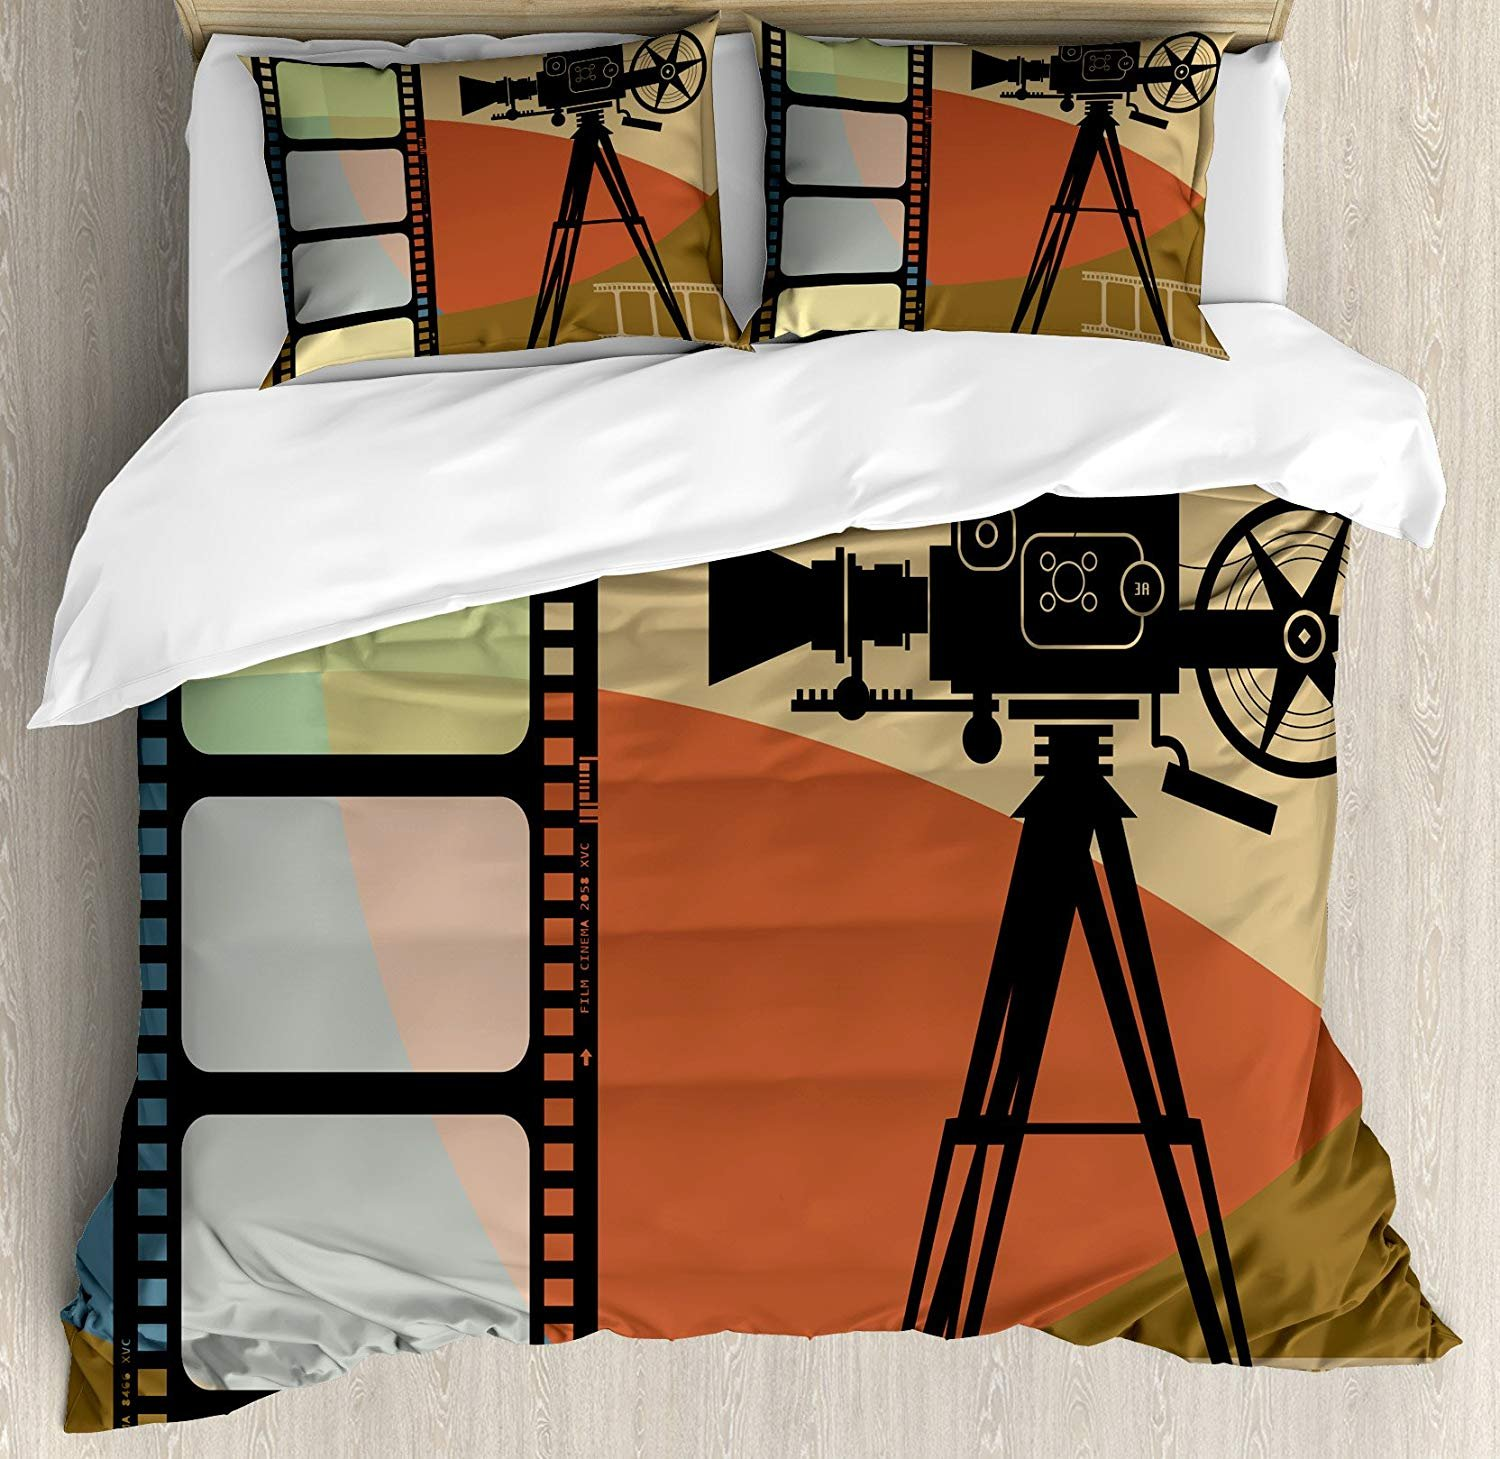 Movie Theater Twin Duvet Cover Sets 4 Piece Bedding Set Bedspread with 2 Pillow Sham, Flat Sheet for Adult/Kids/Teens, Abstract Retro Style Colorful Composition with Projection and Strip Border